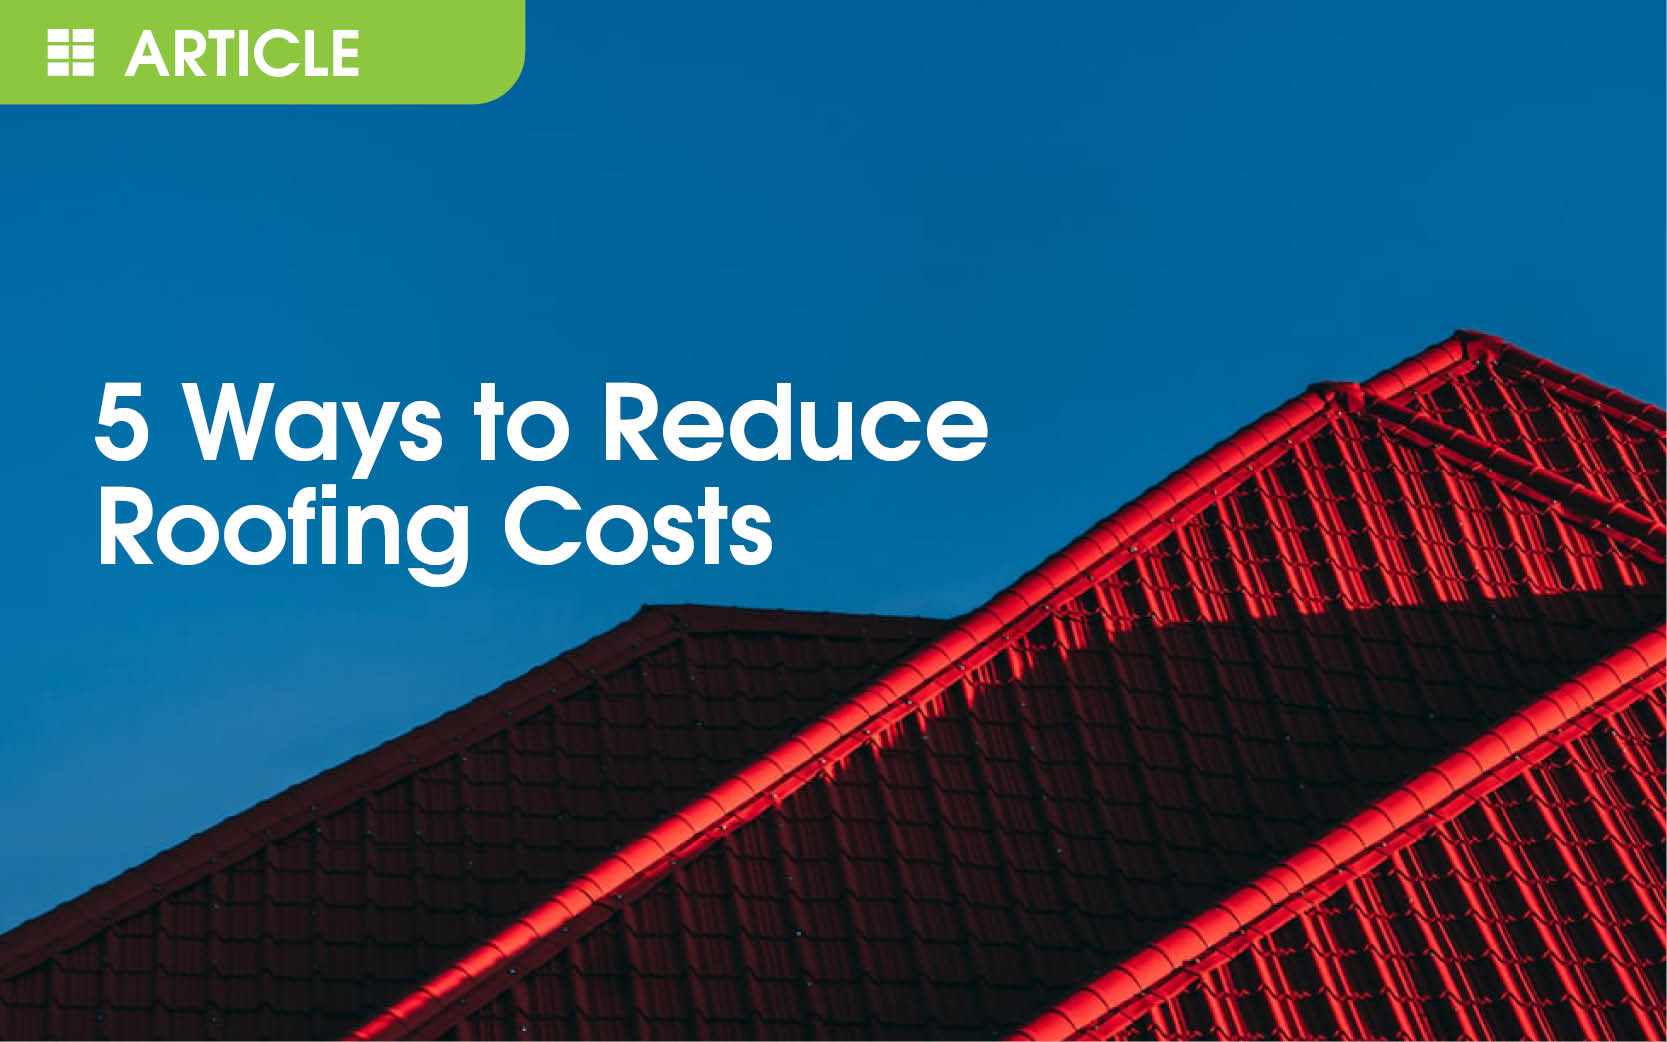 5 Ways to Reduce Roof Repair Costs